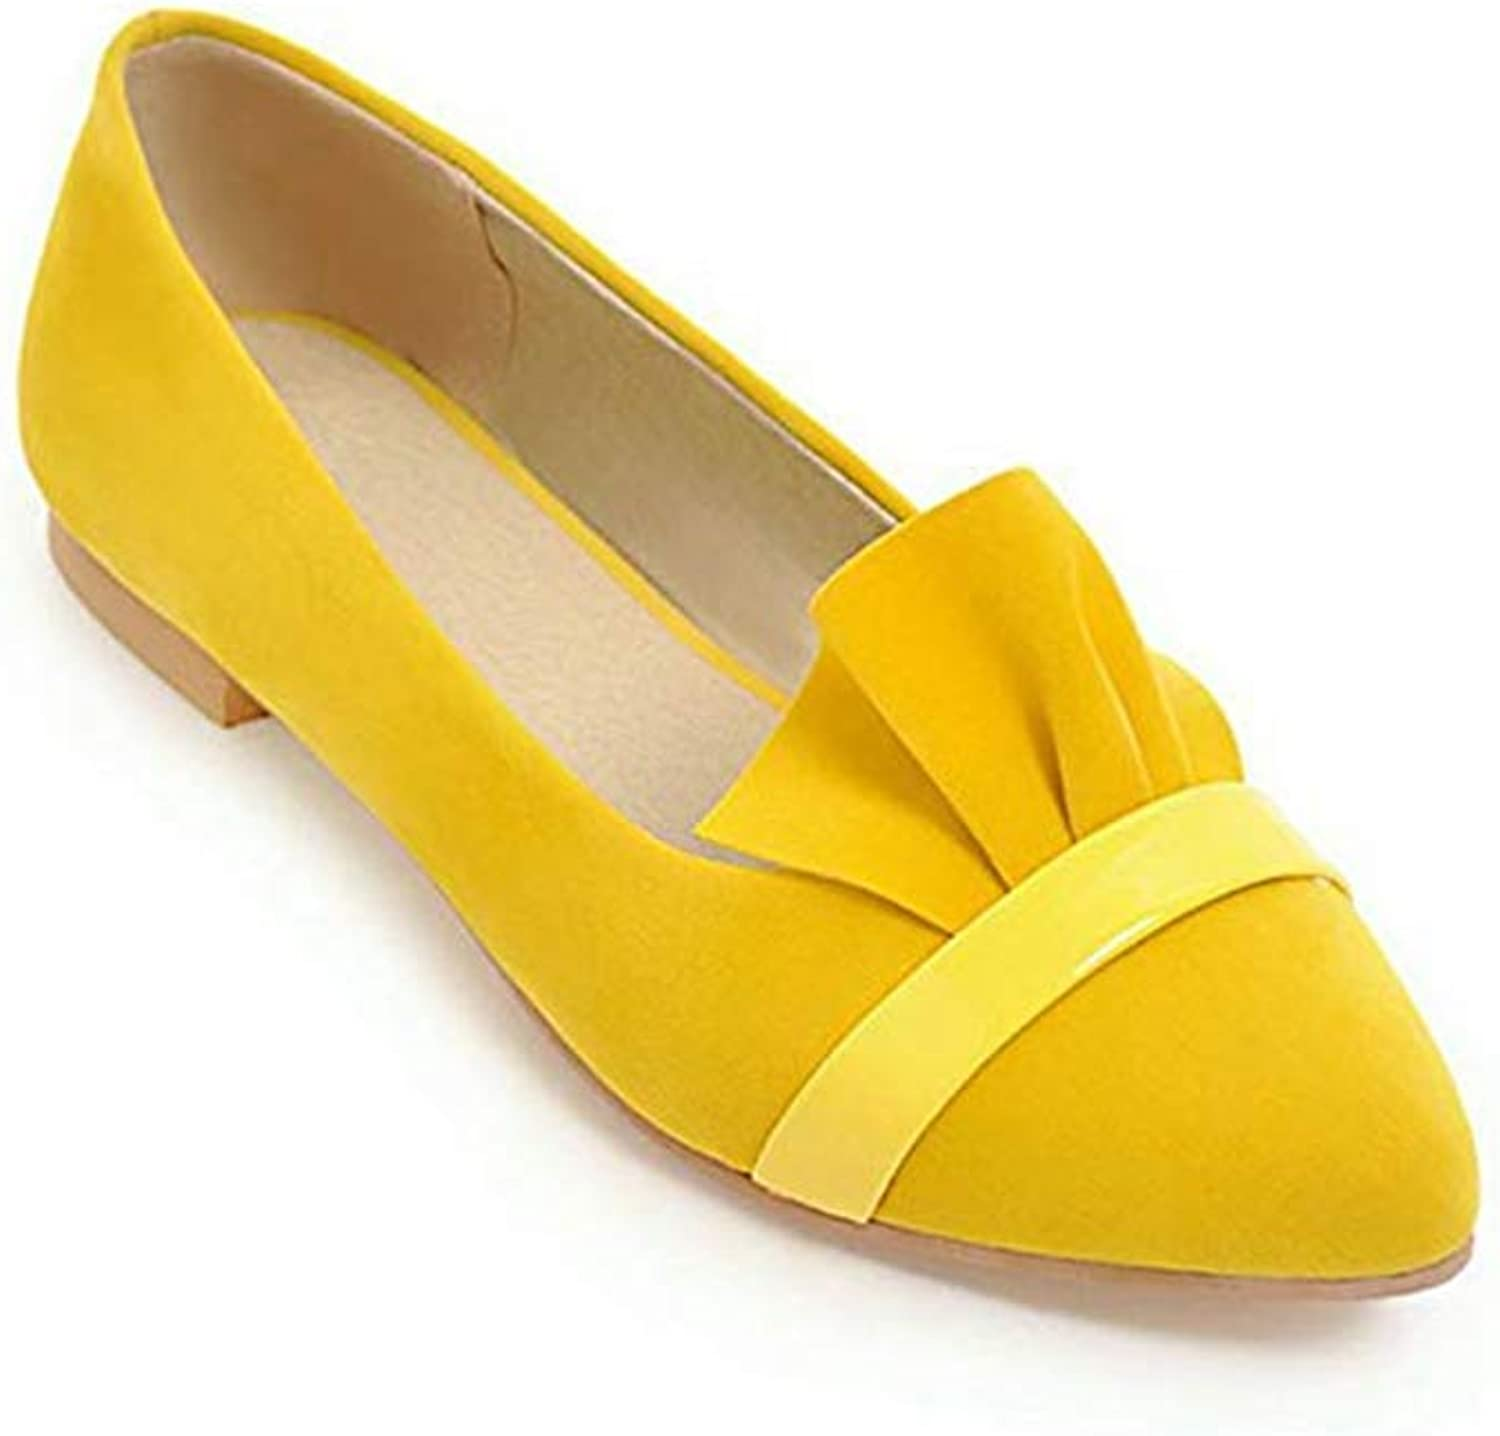 T-JULY Women's Flats Soft Suede Ballet Pointed Toe Loafers Slip-on Breathable Casual Pregnant Driving Ladies shoes